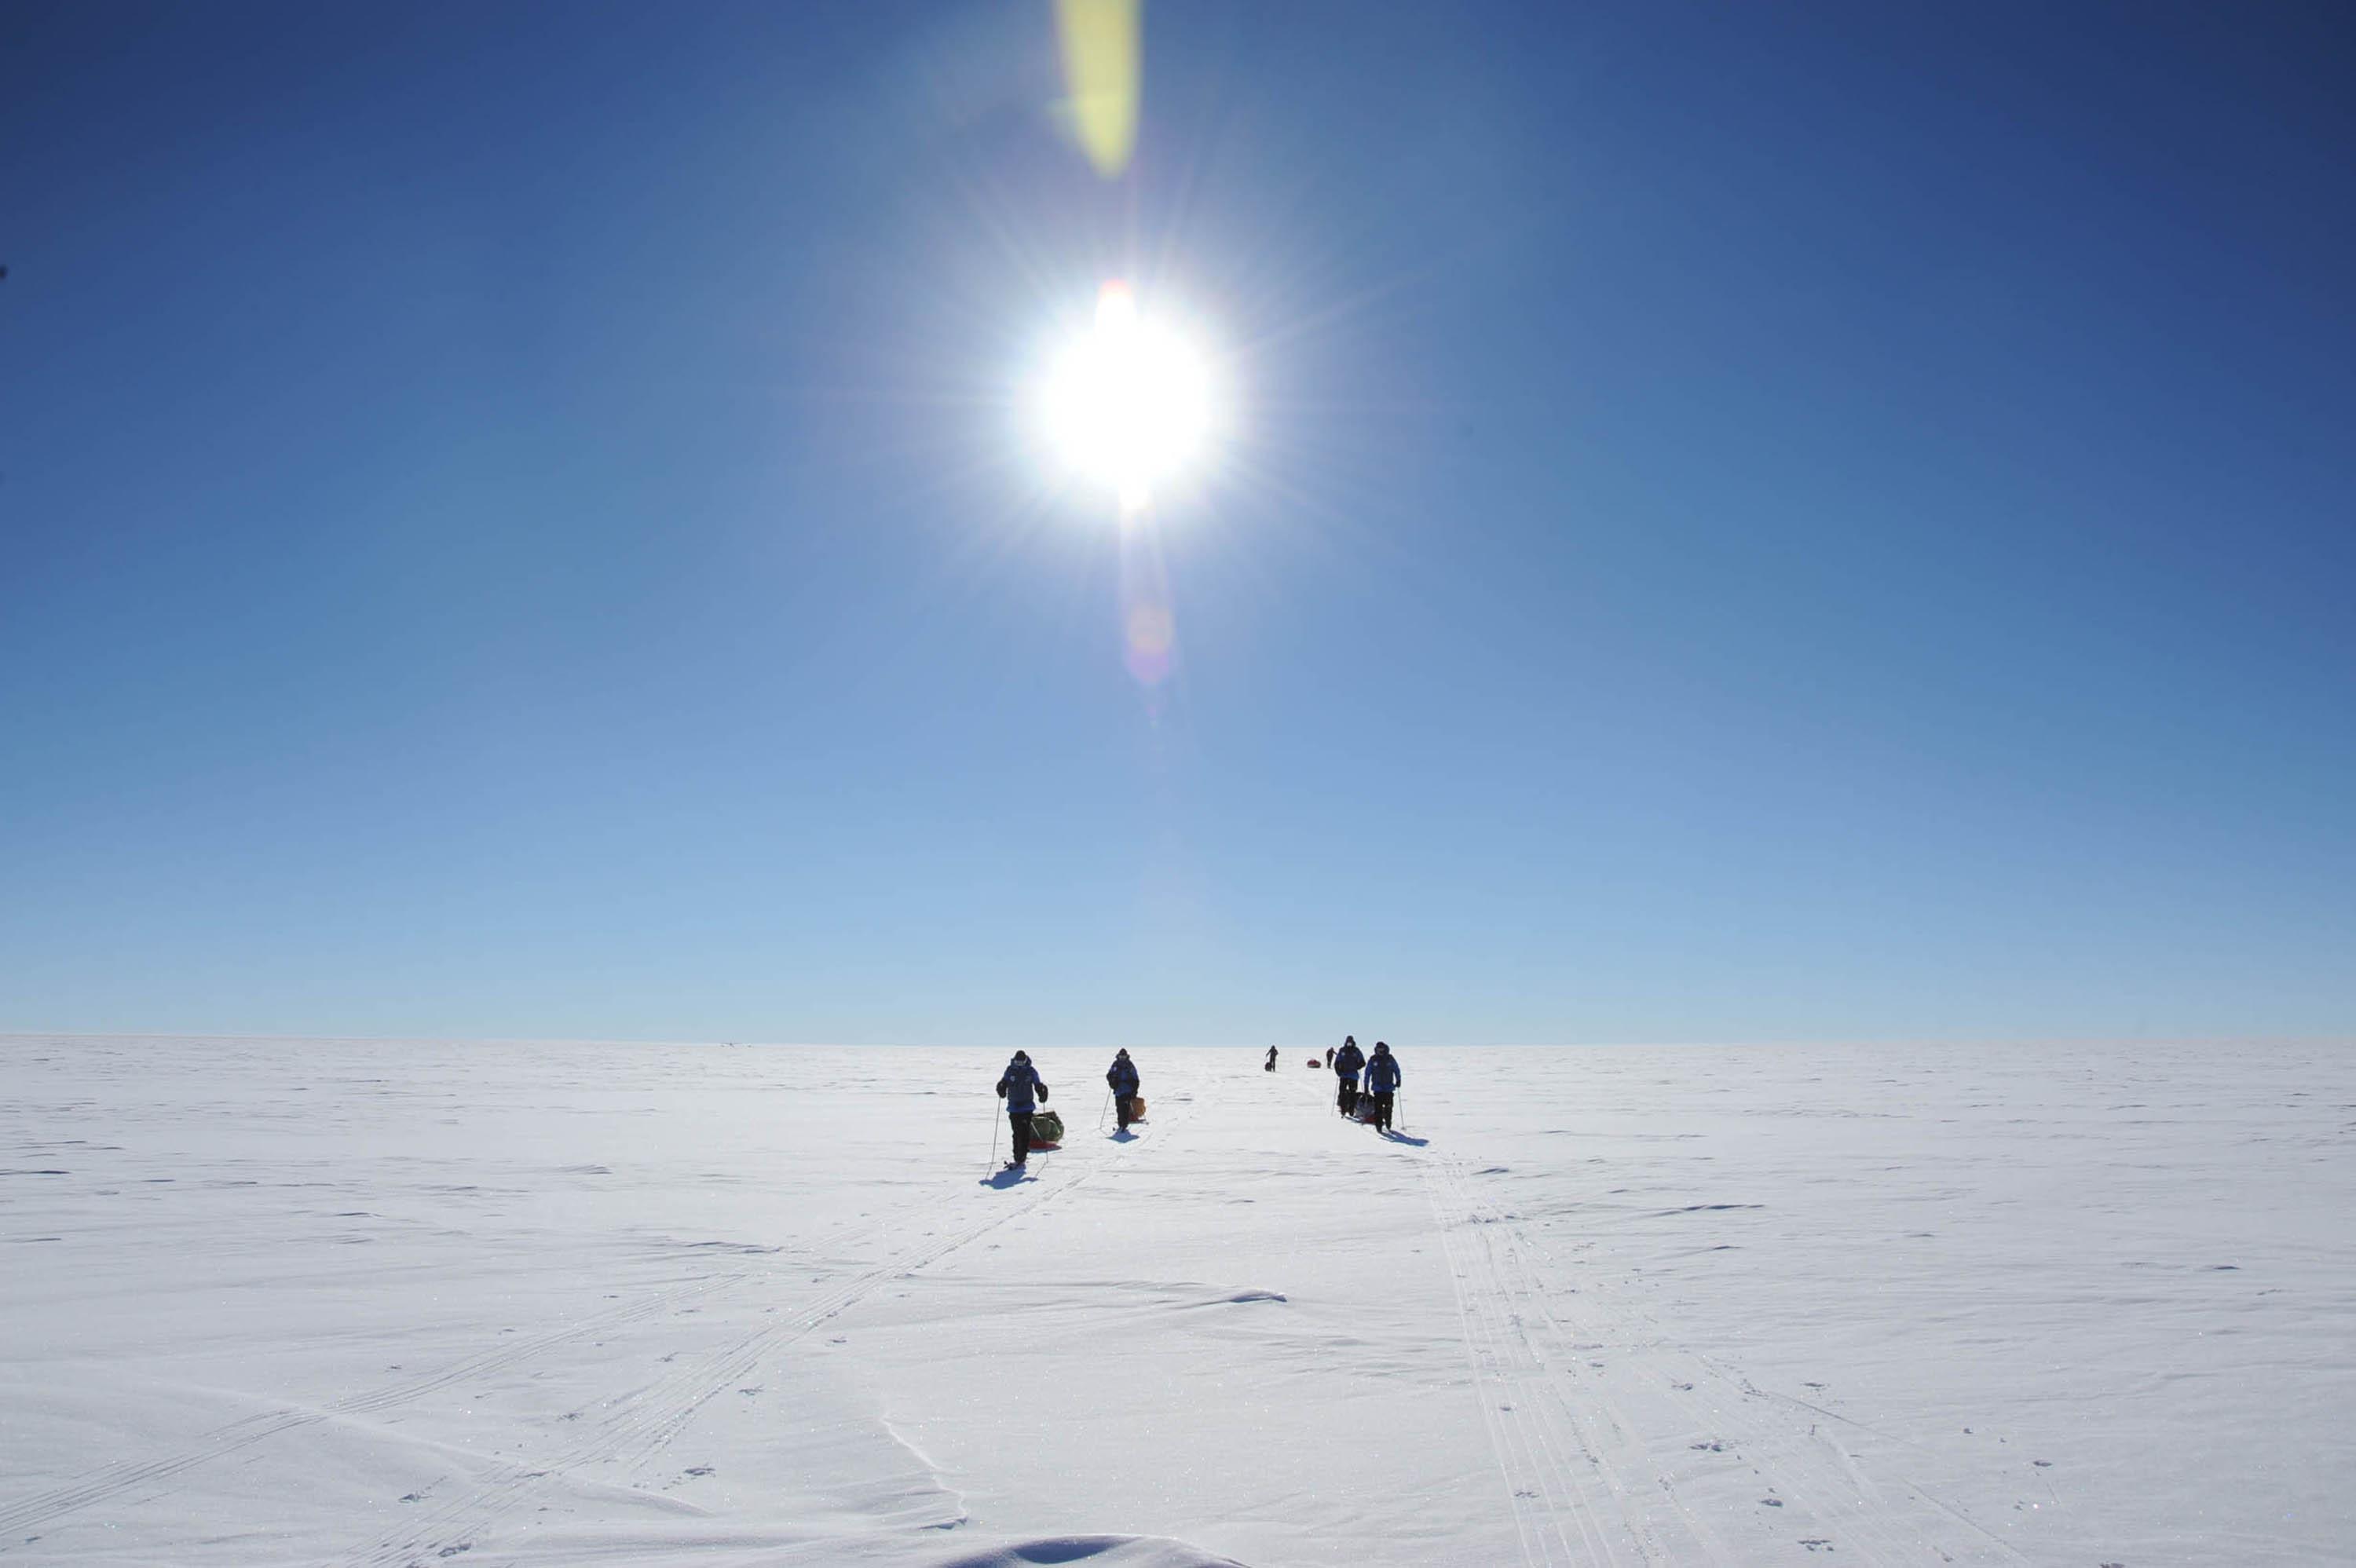 humans ability south pole expedition 2014 global alliance for